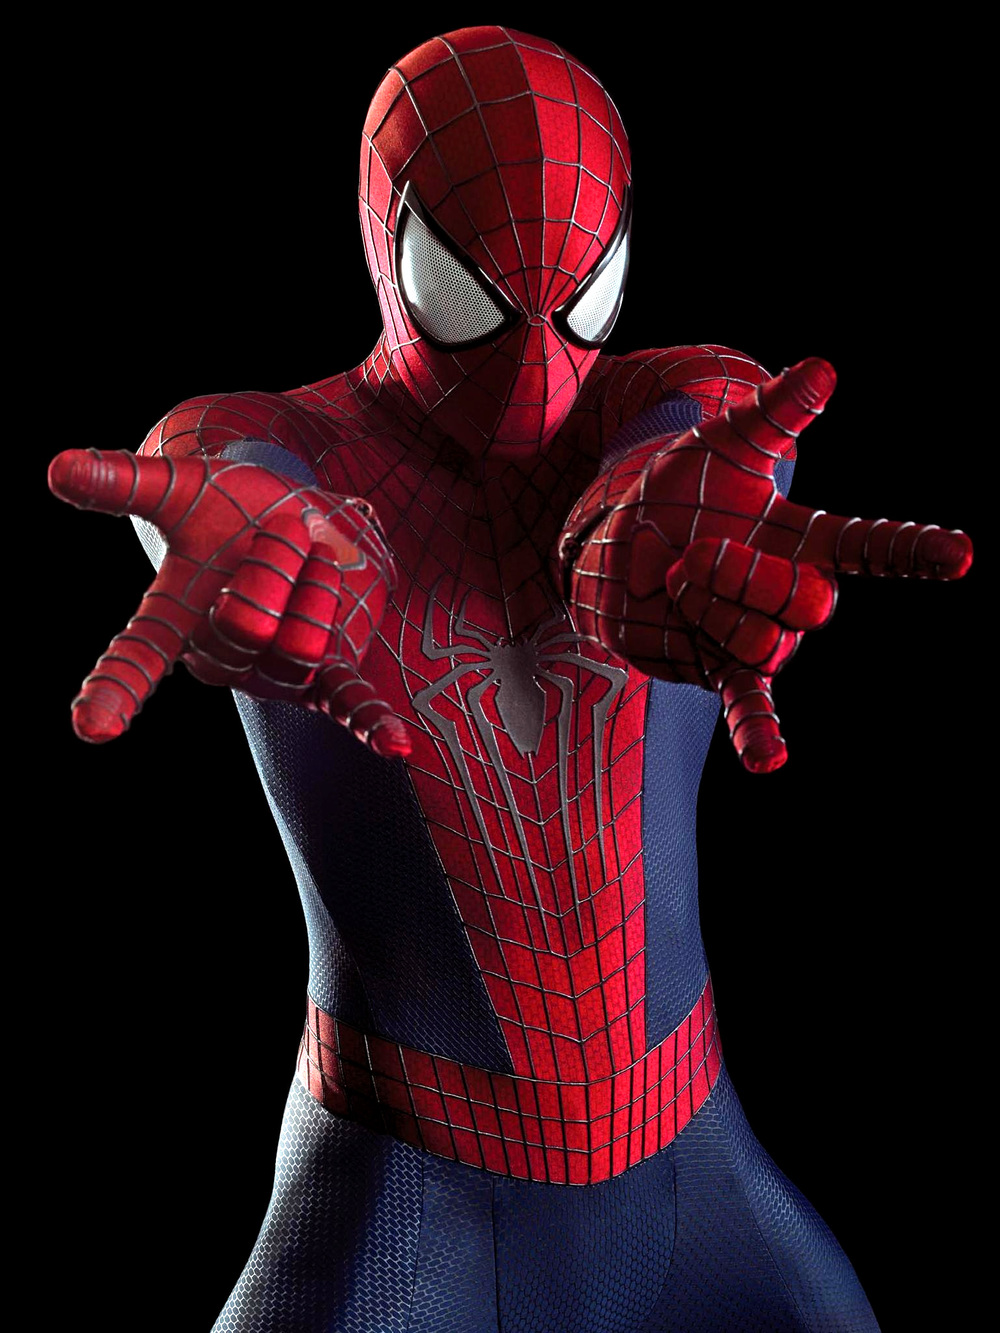 The Amazing Spider Man Backgrounds, Compatible - PC, Mobile, Gadgets  1000x1333 px